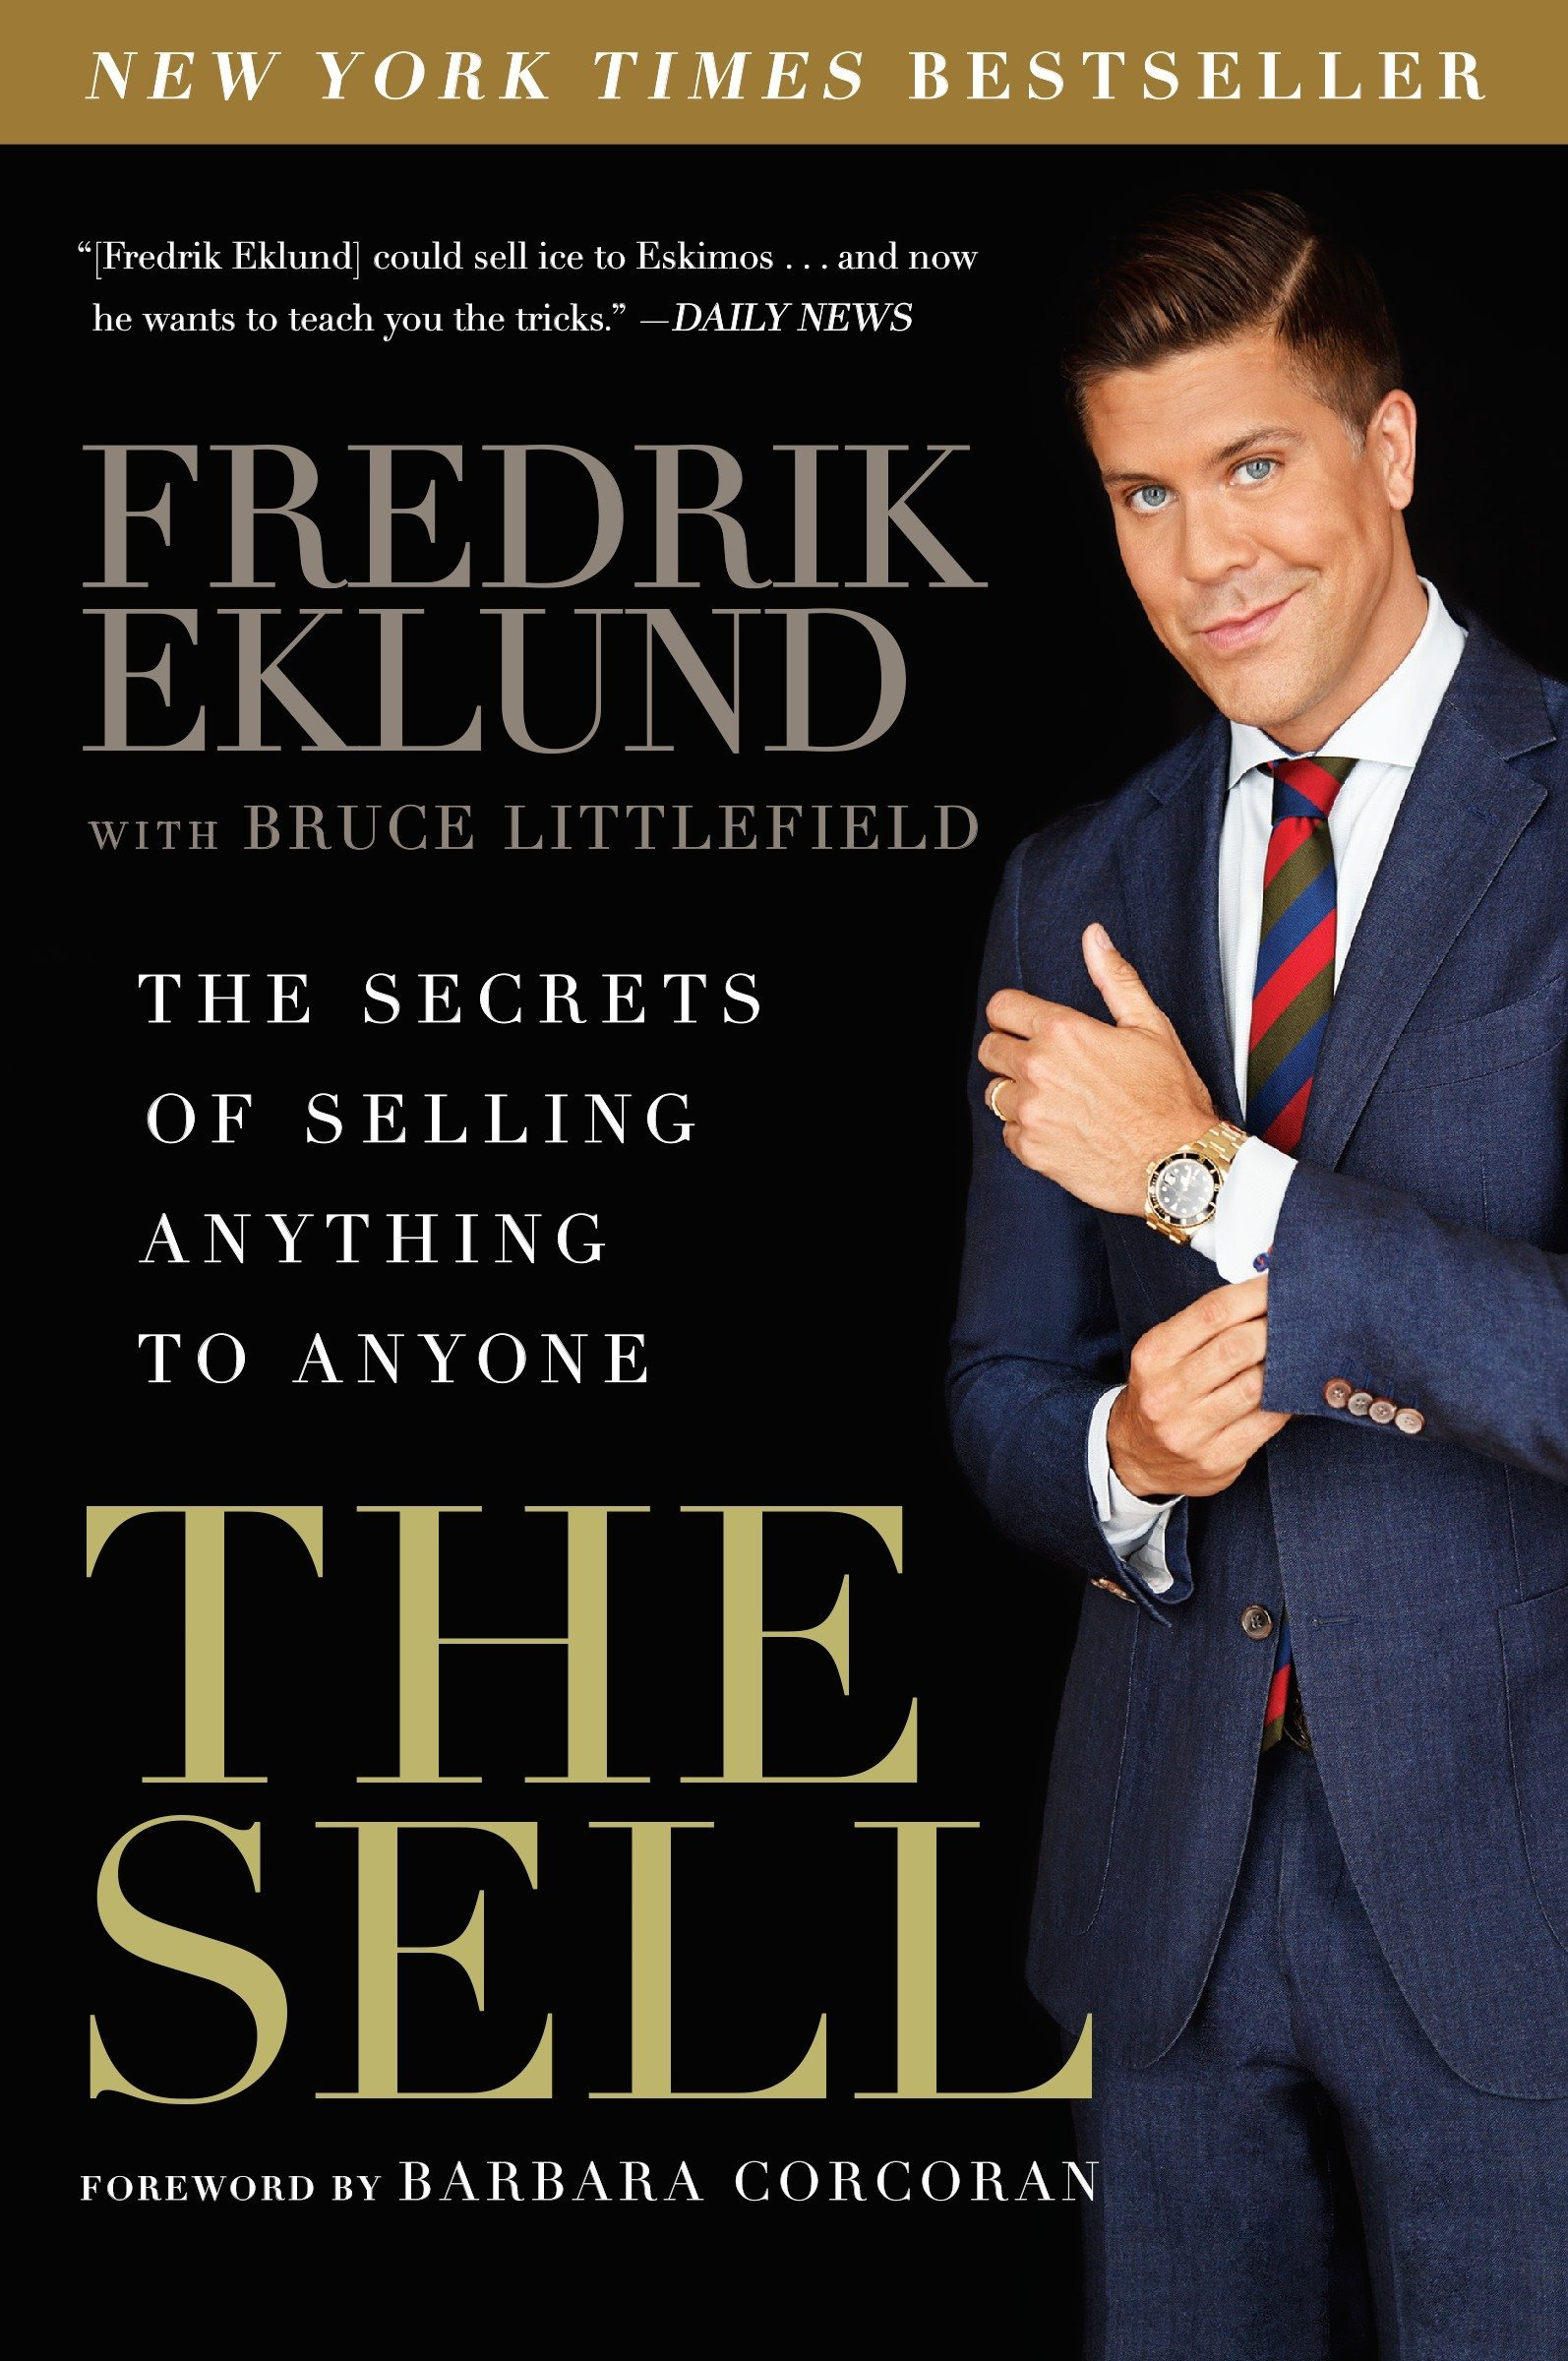 The Sell: The Secrets of Selling Anything to Anyone: Fredrik Eklund, Bruce  Littlefield, Barbara Corcoran: 9781592409525: Amazon.com: Books